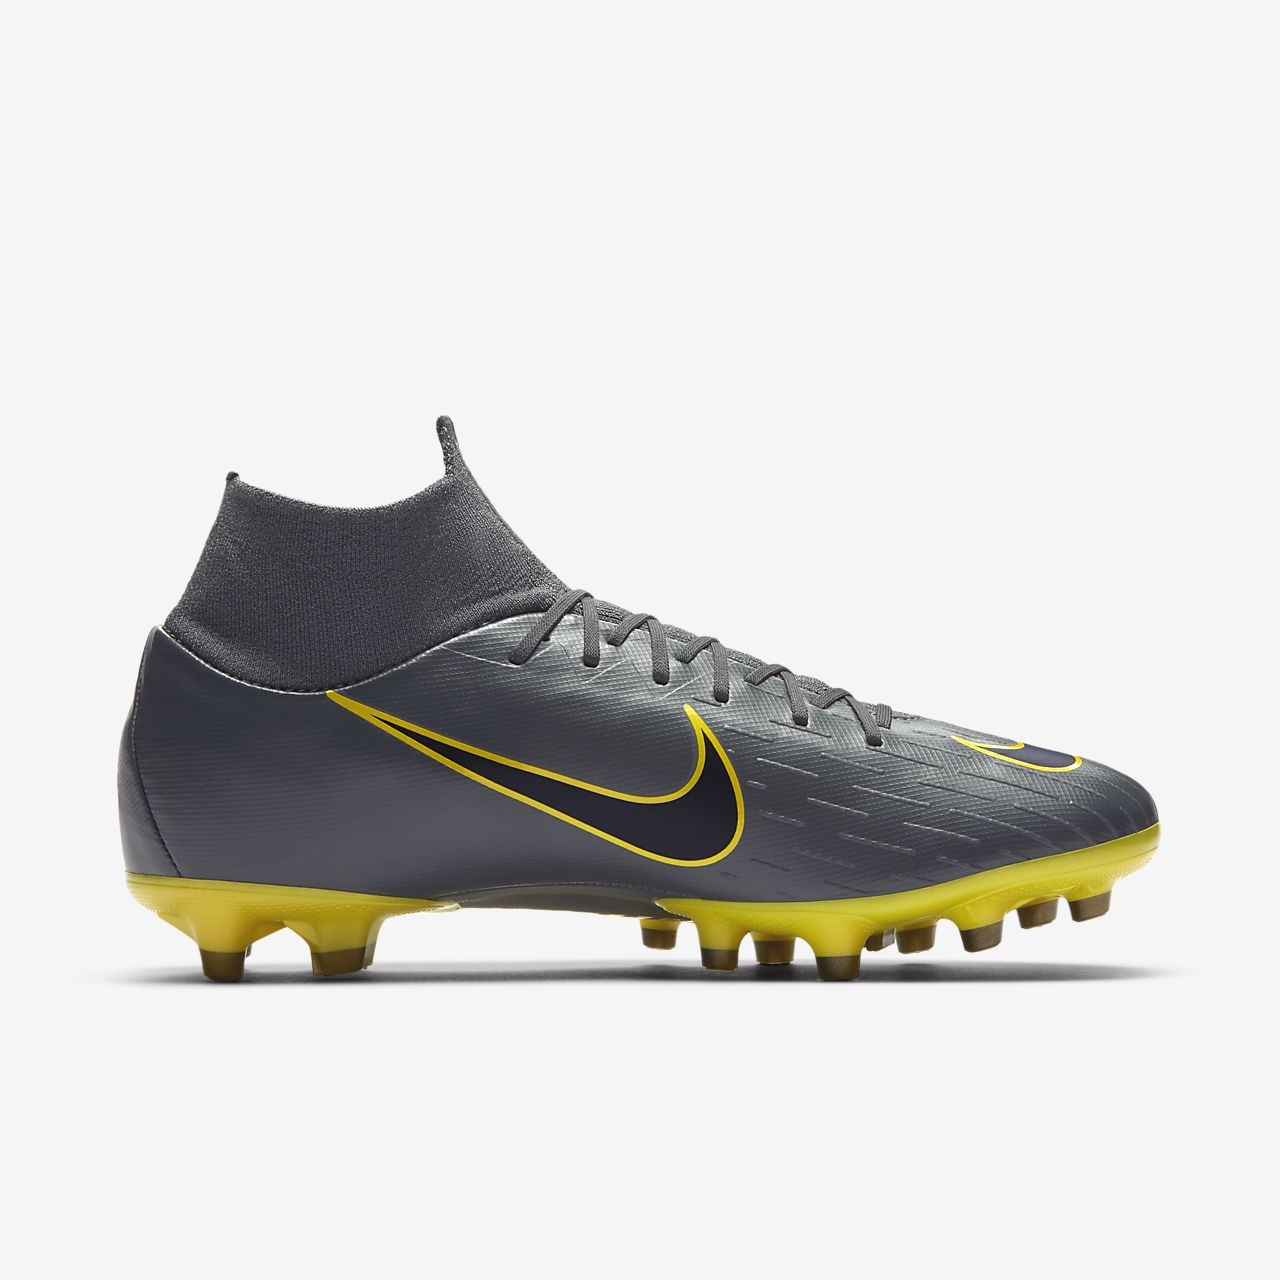 5143bd8909b7 Nike Mercurial Superfly VI Pro AG-PRO Artificial-Grass Football Boot ...